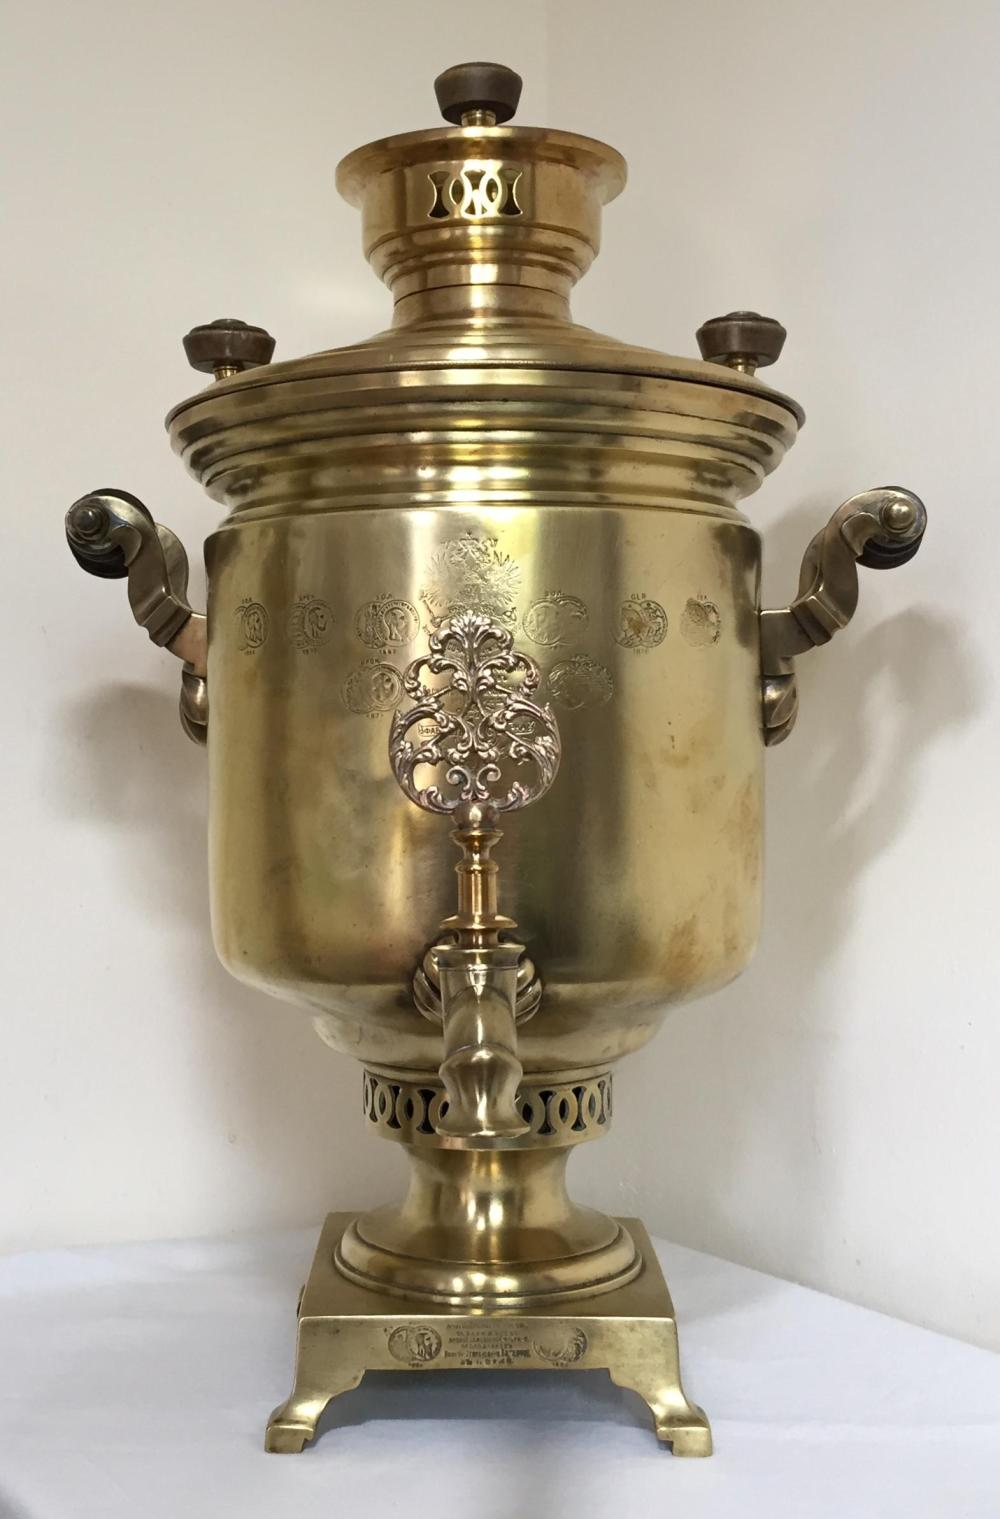 Lot 47: Imperial Russian Brass Samovar by the Batashev Factory, Tula Circa  1900, Brass, Circa 1900